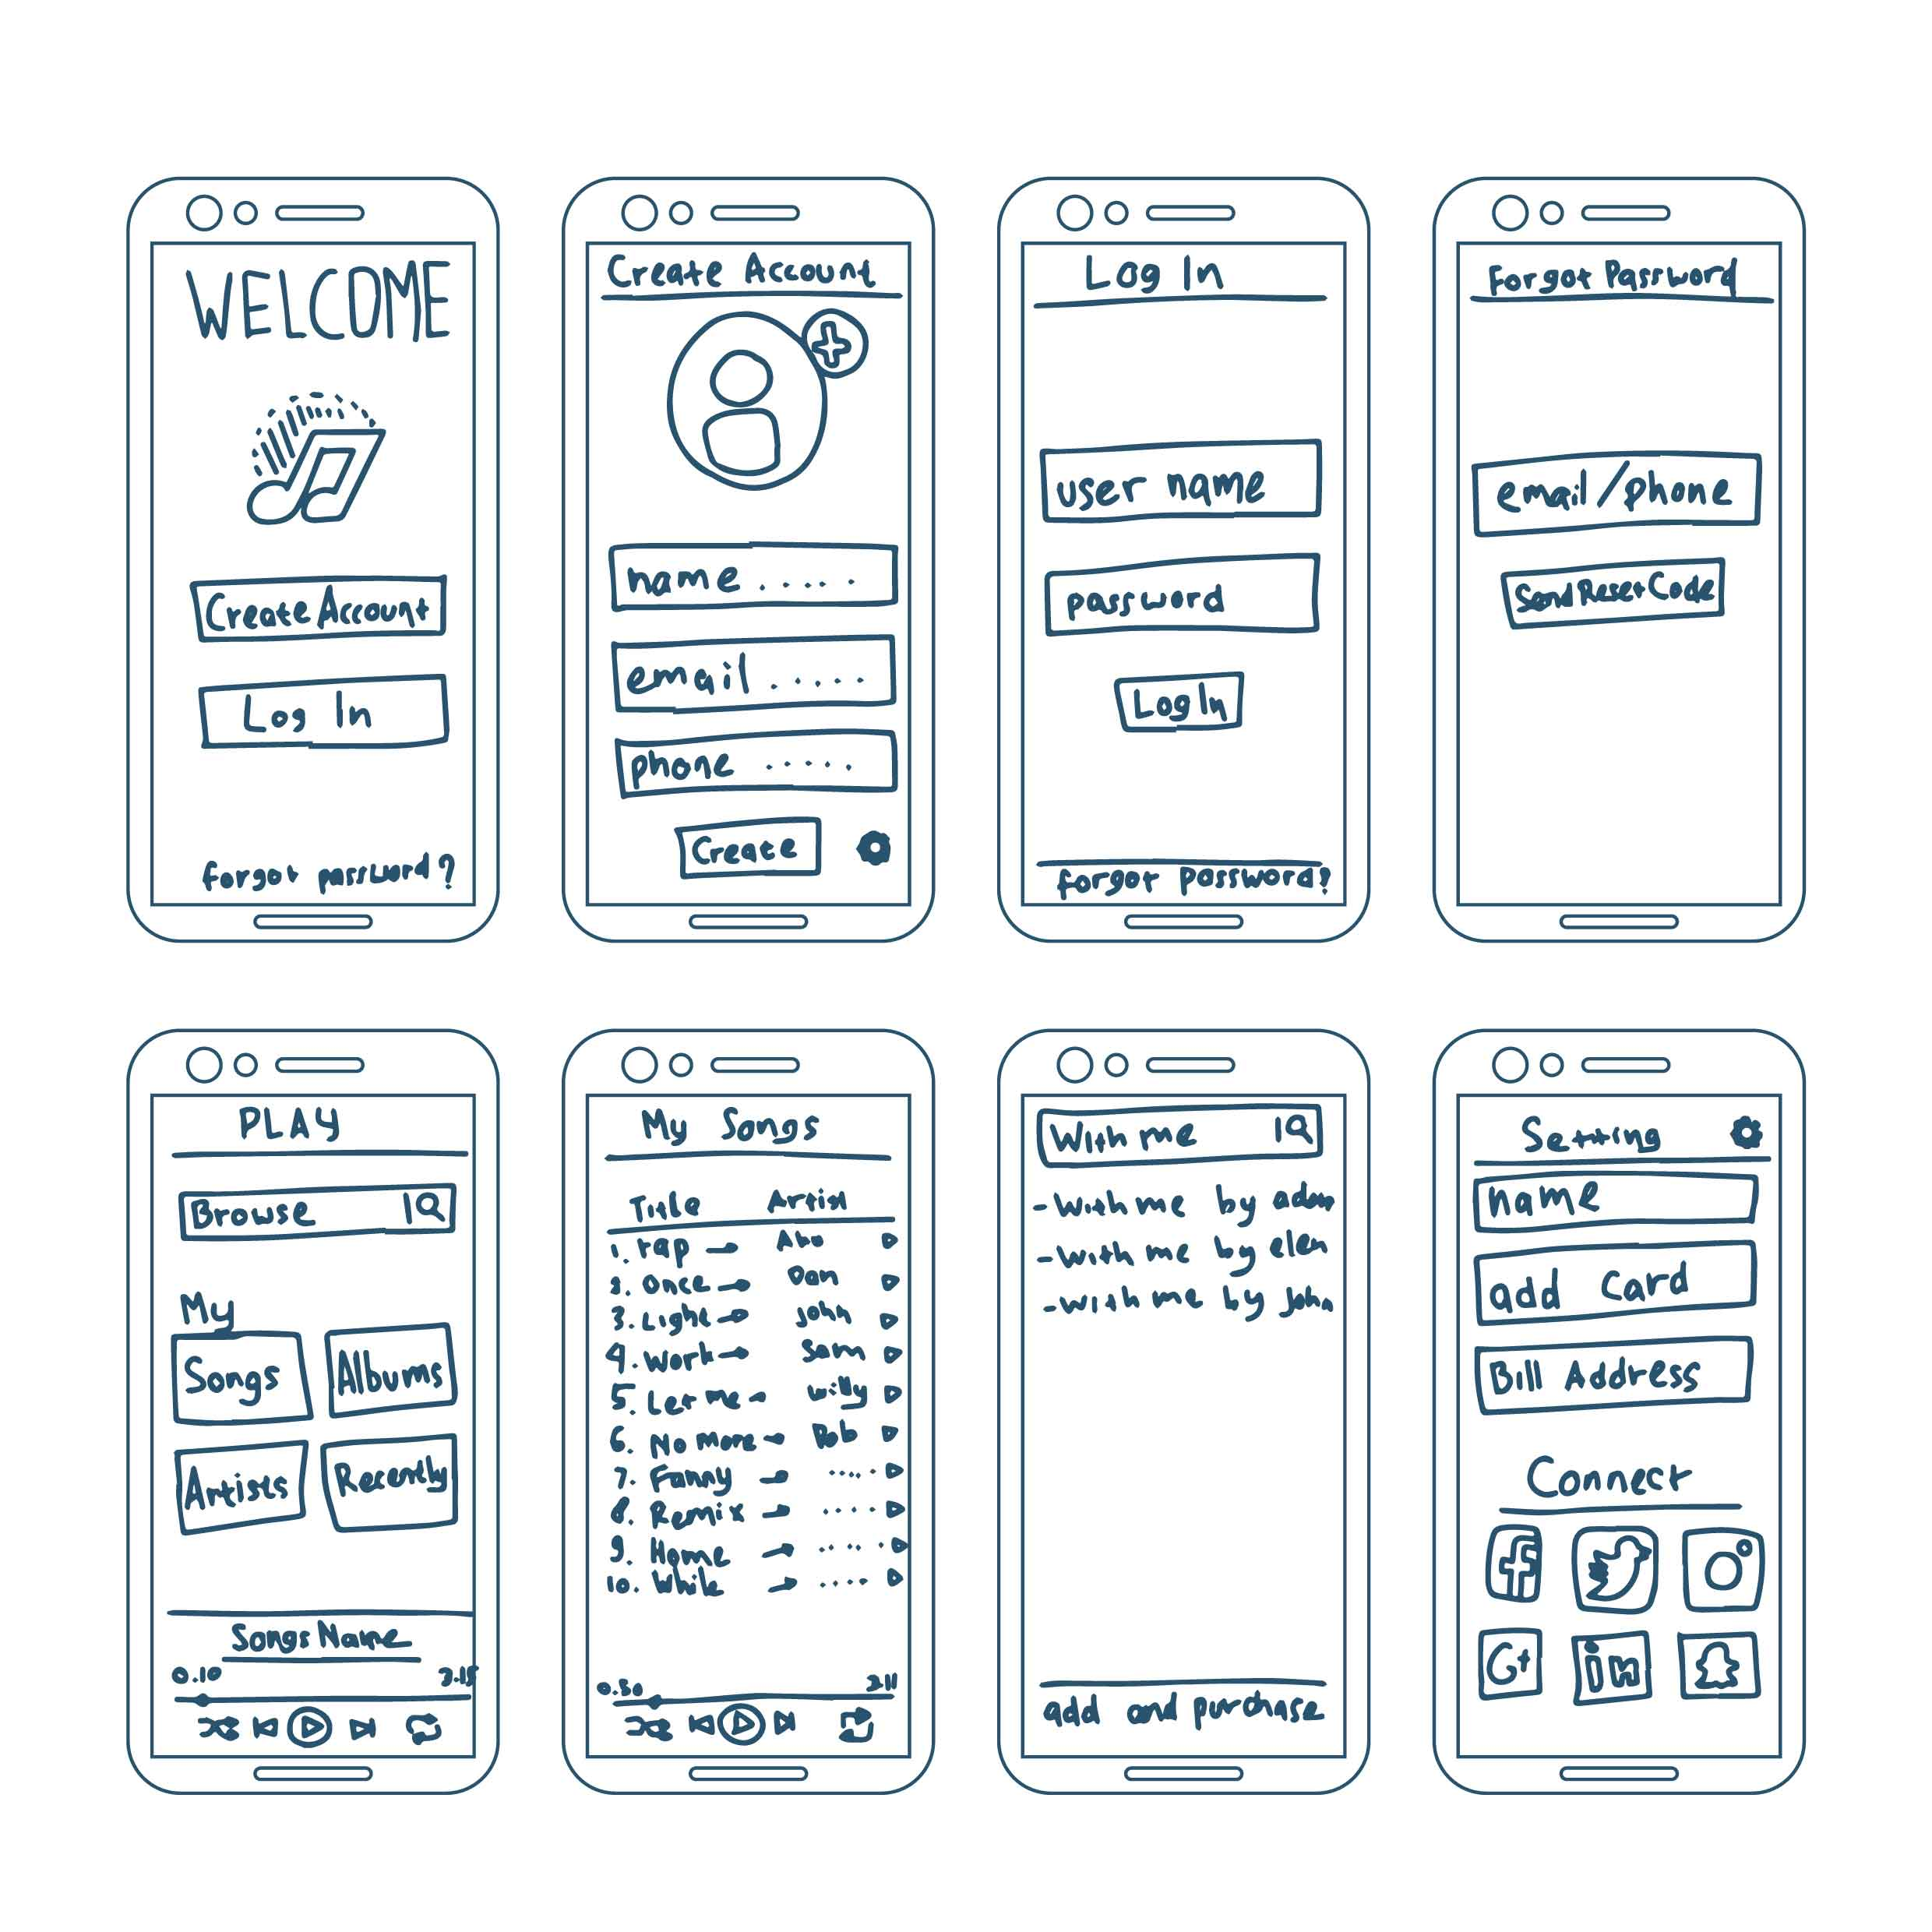 music apps wireframe elements